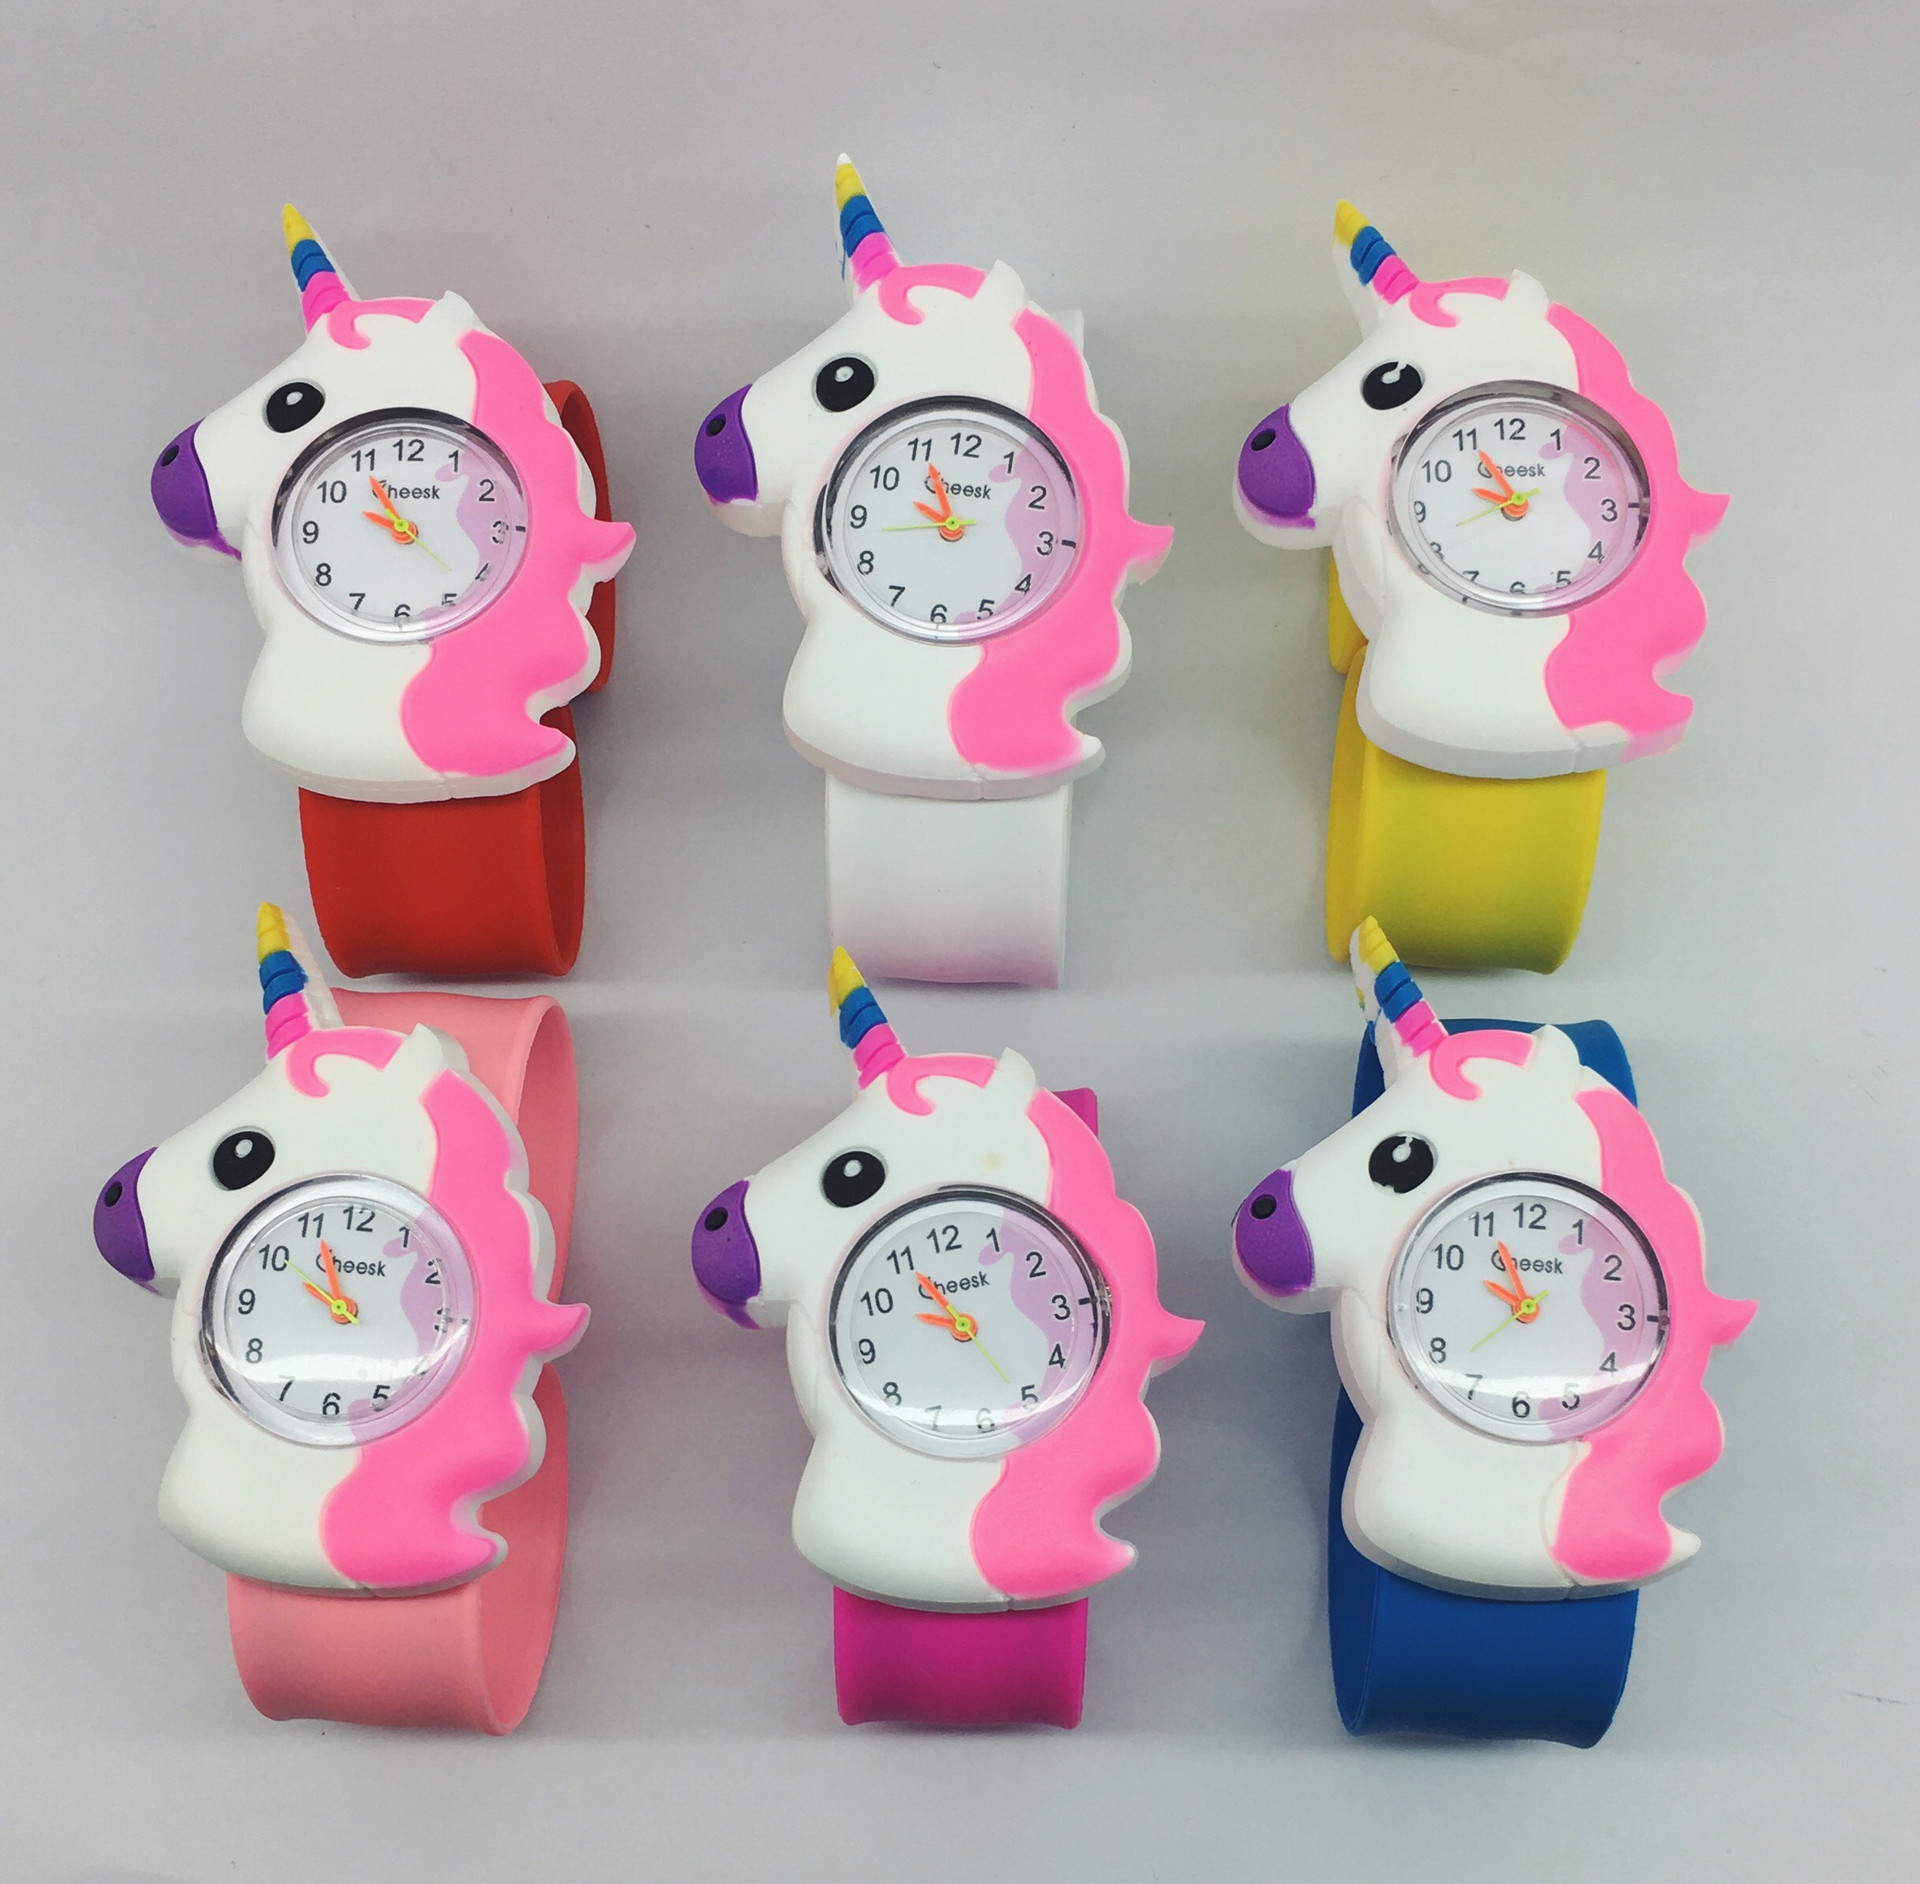 3D Cartoon Unicorn Kid Watches Casual Quartz Wristwatch Silicone Band Slap Watch Children unicorn Sports Watch Cute Baby Clock xinkai 0015 children s casual silicone band quartz analog wristwatch black red 1 x 377